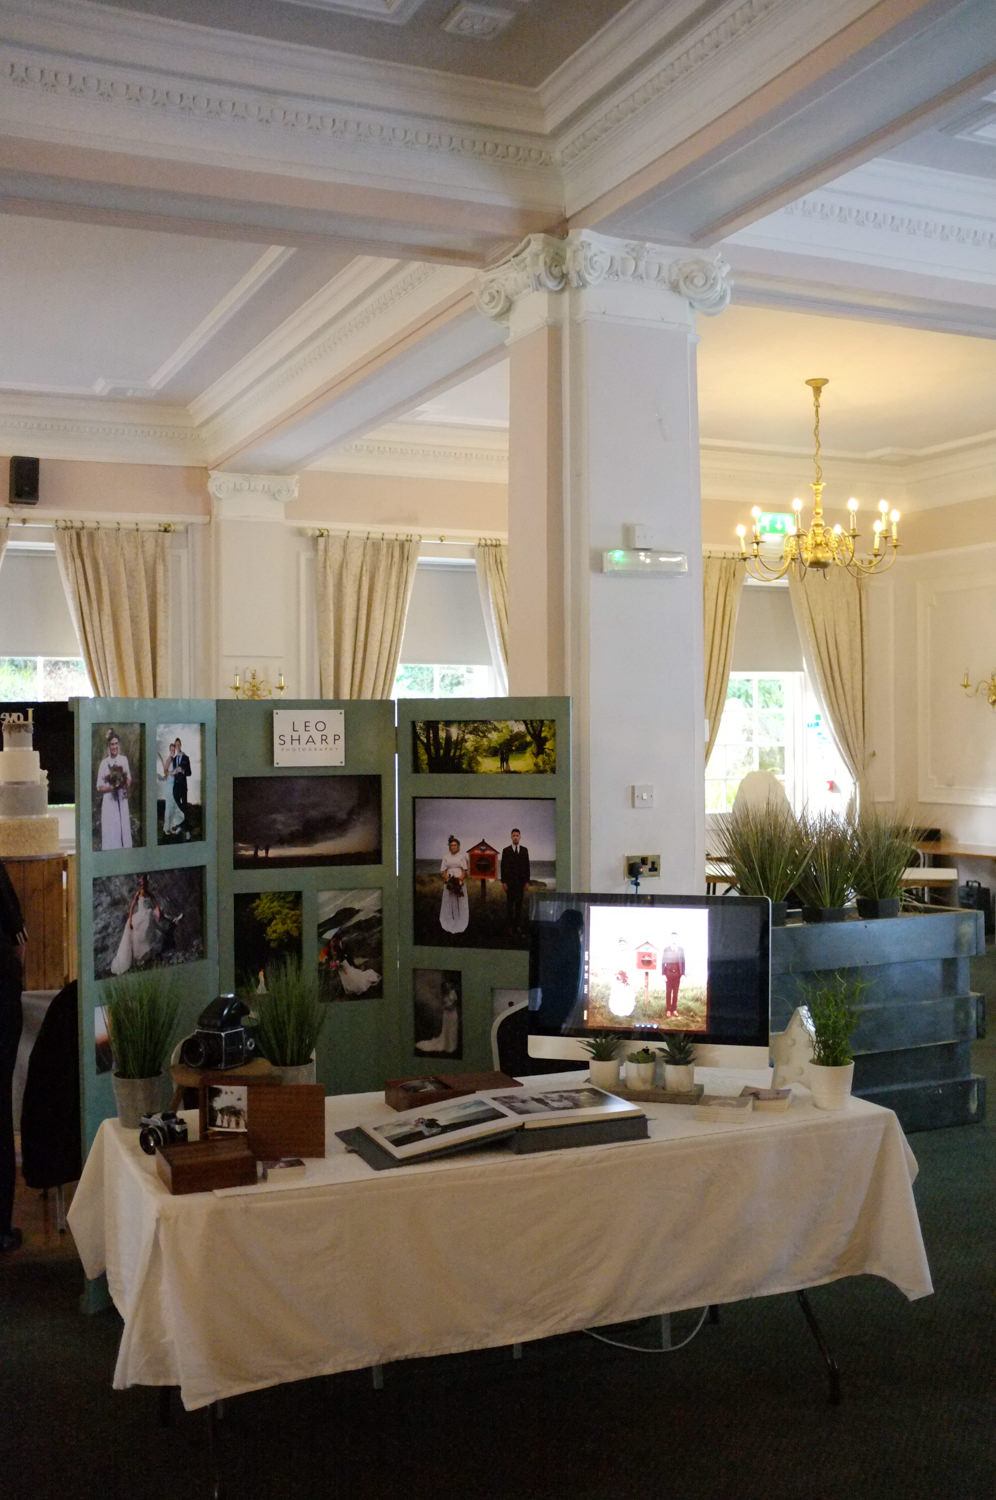 Leo Sharp Photography stand at Tregenna castle wedding fair